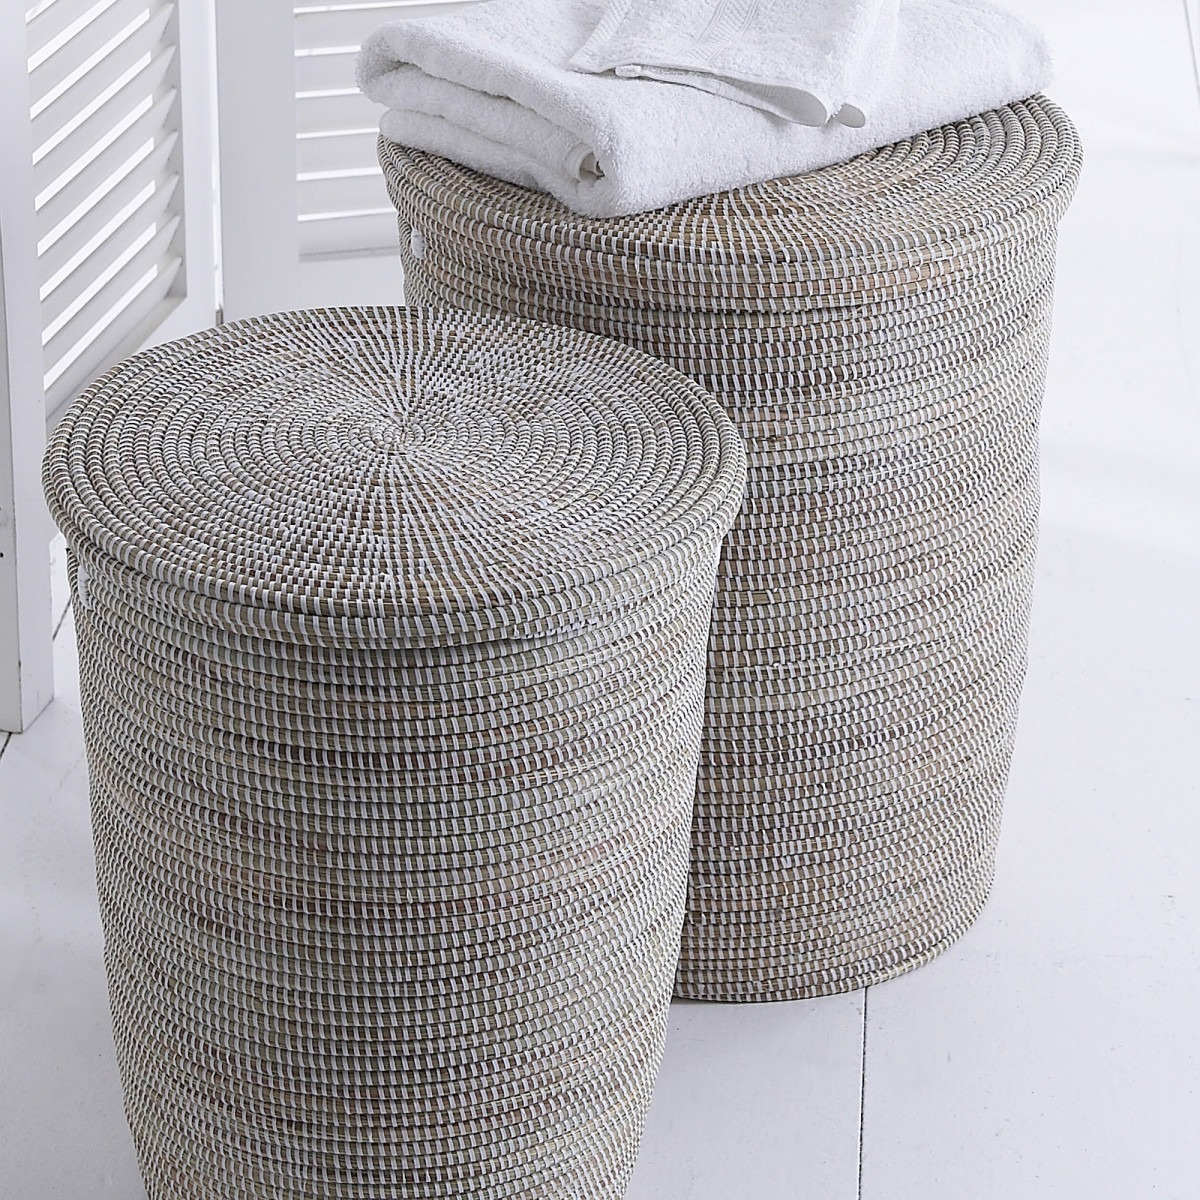 Black And Natural Woven Baskets